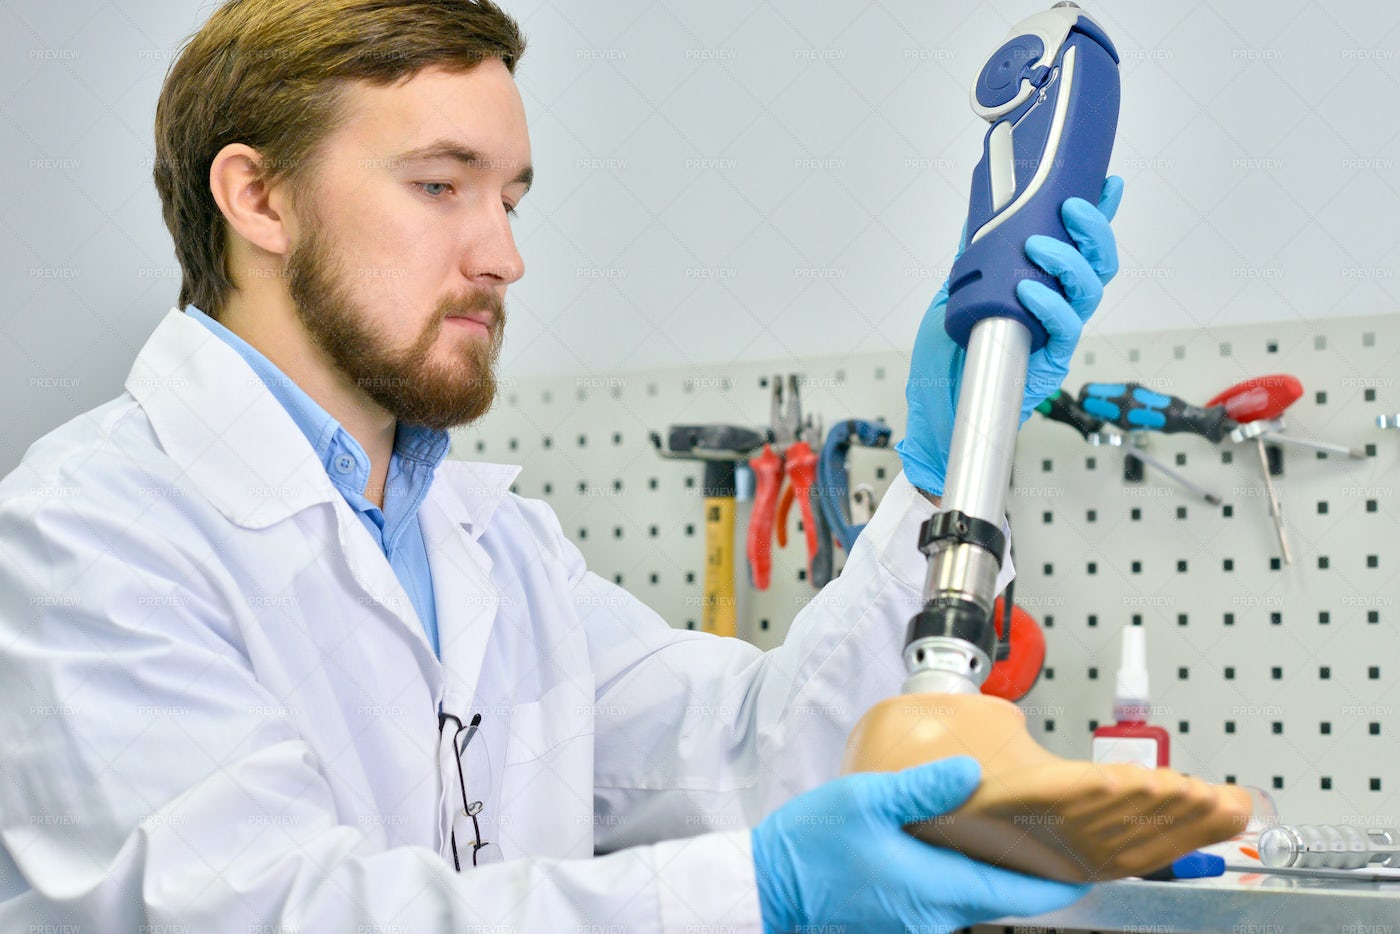 Young Prosthetist Holding ...: Stock Photos